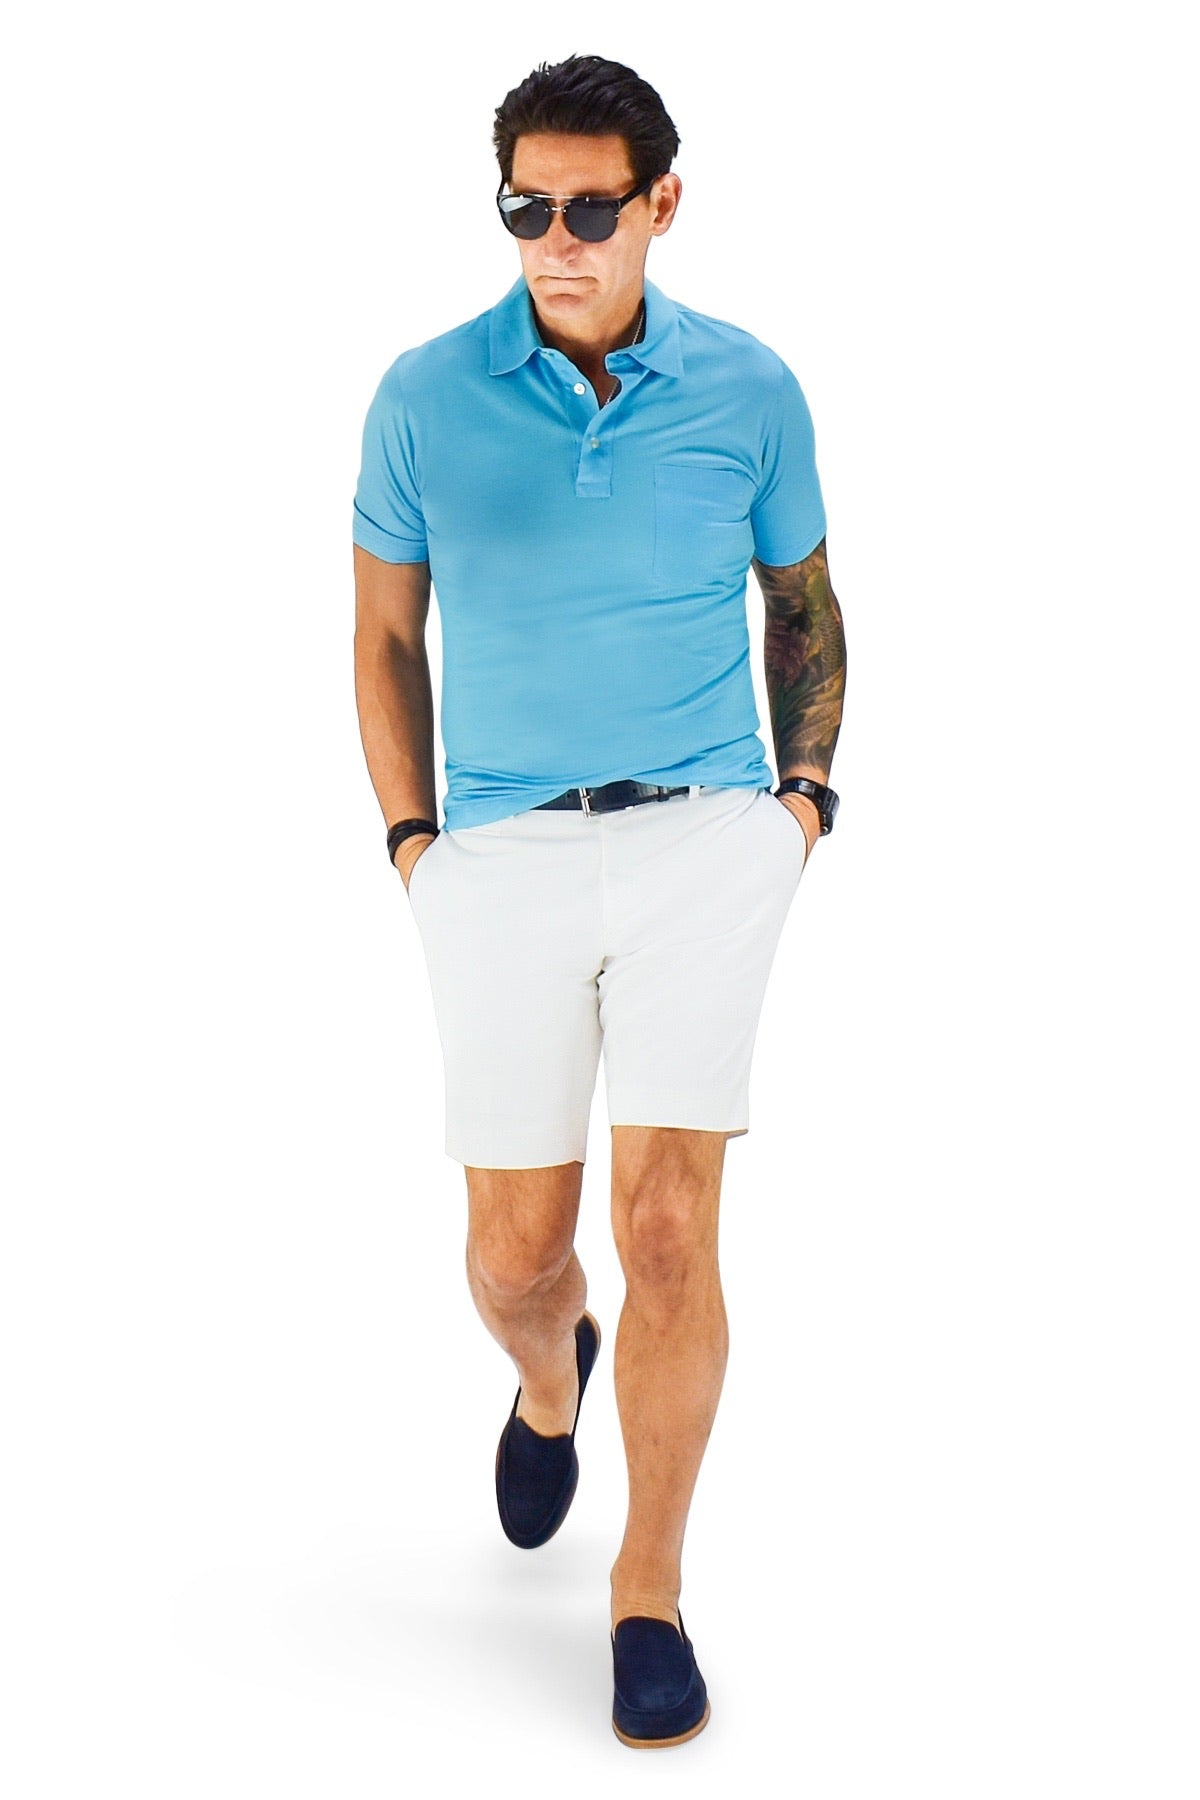 David August Slim Fit White Cotton Twill Shorts - Cut-to-Order